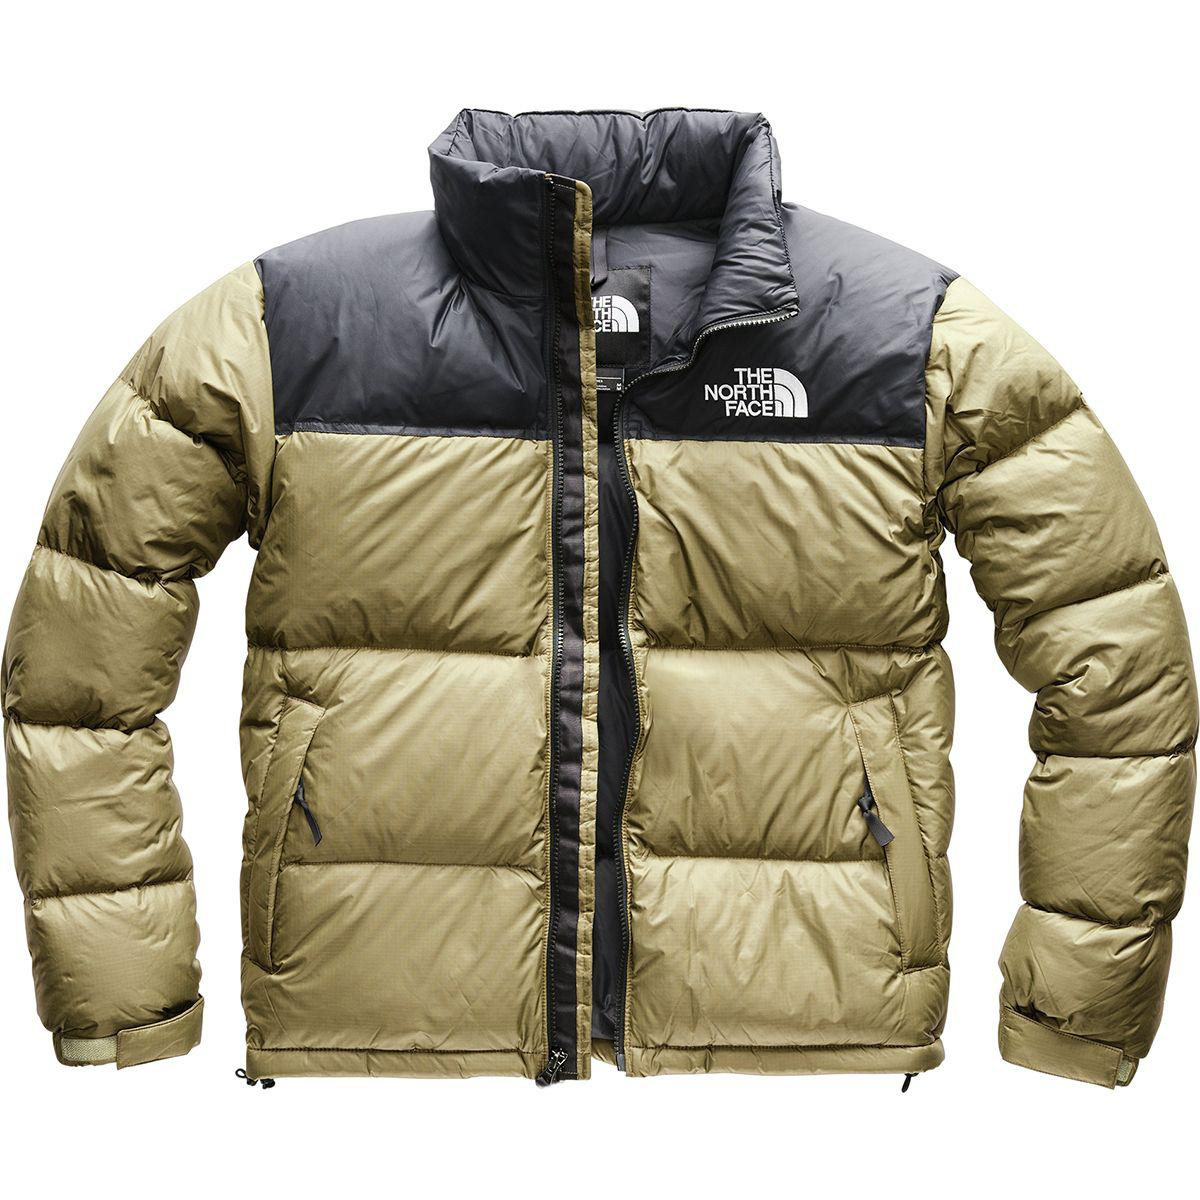 Lyst - The North Face 1996 Retro Nuptse Jacket in Green for Men c5088ae64